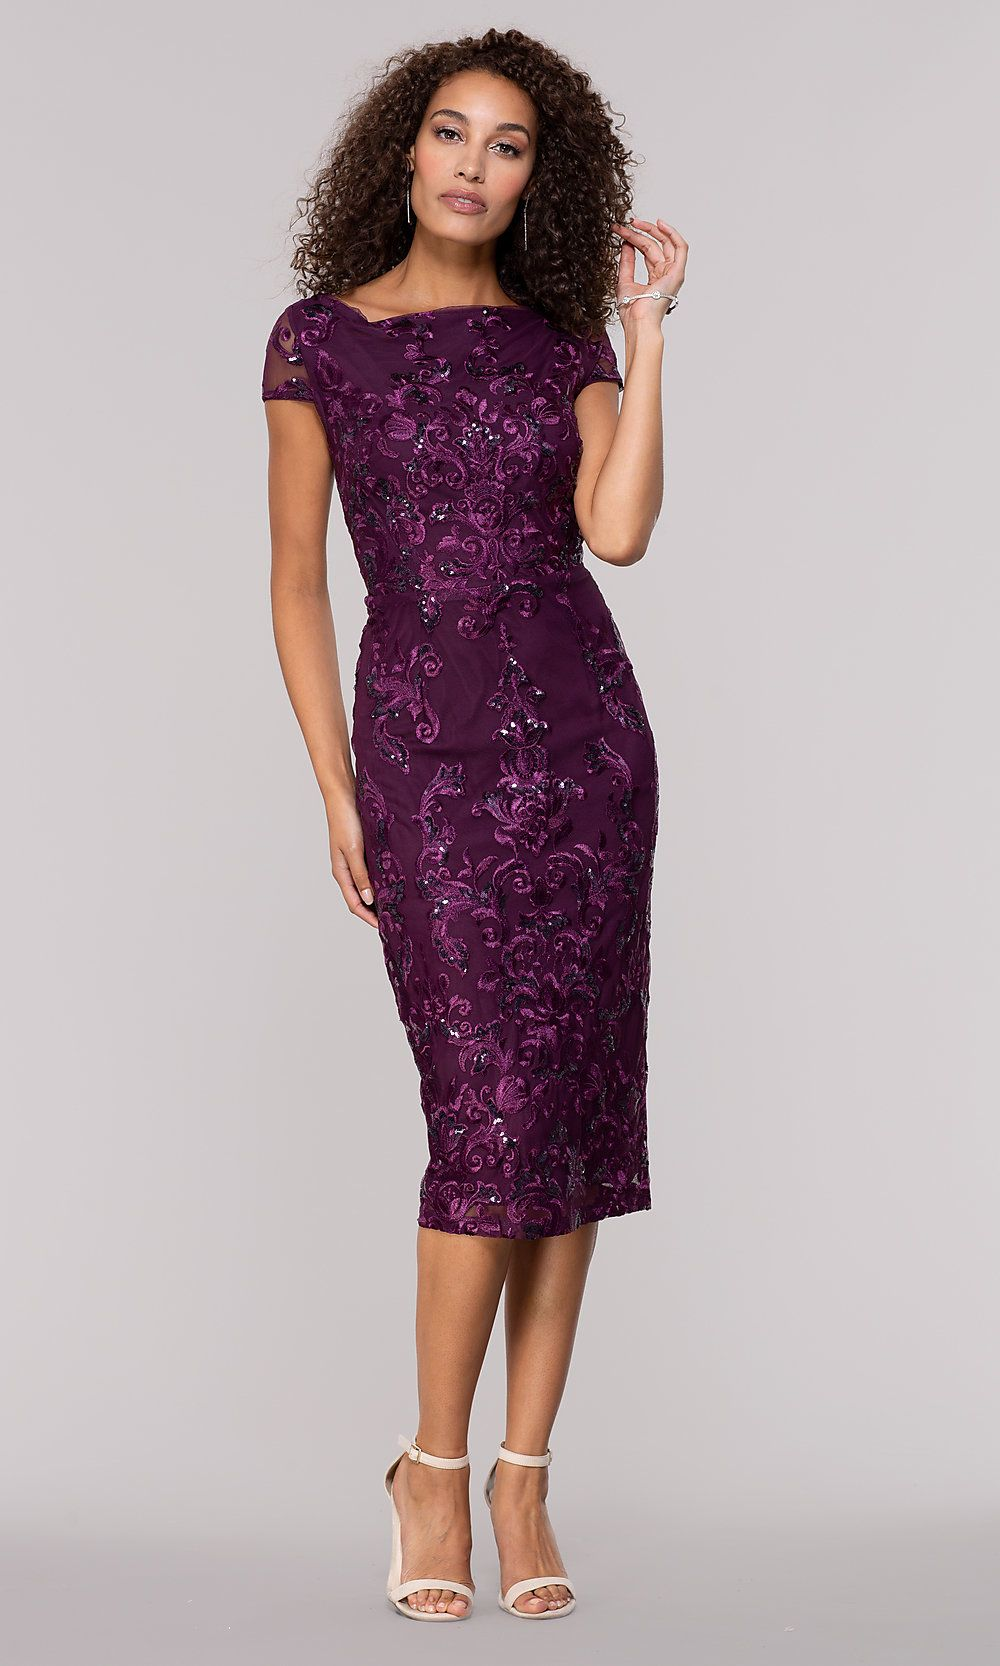 337b7193d4f6 Eggplant Purple Knee-Length Wedding-Guest Dress in 2019 | My Style ...